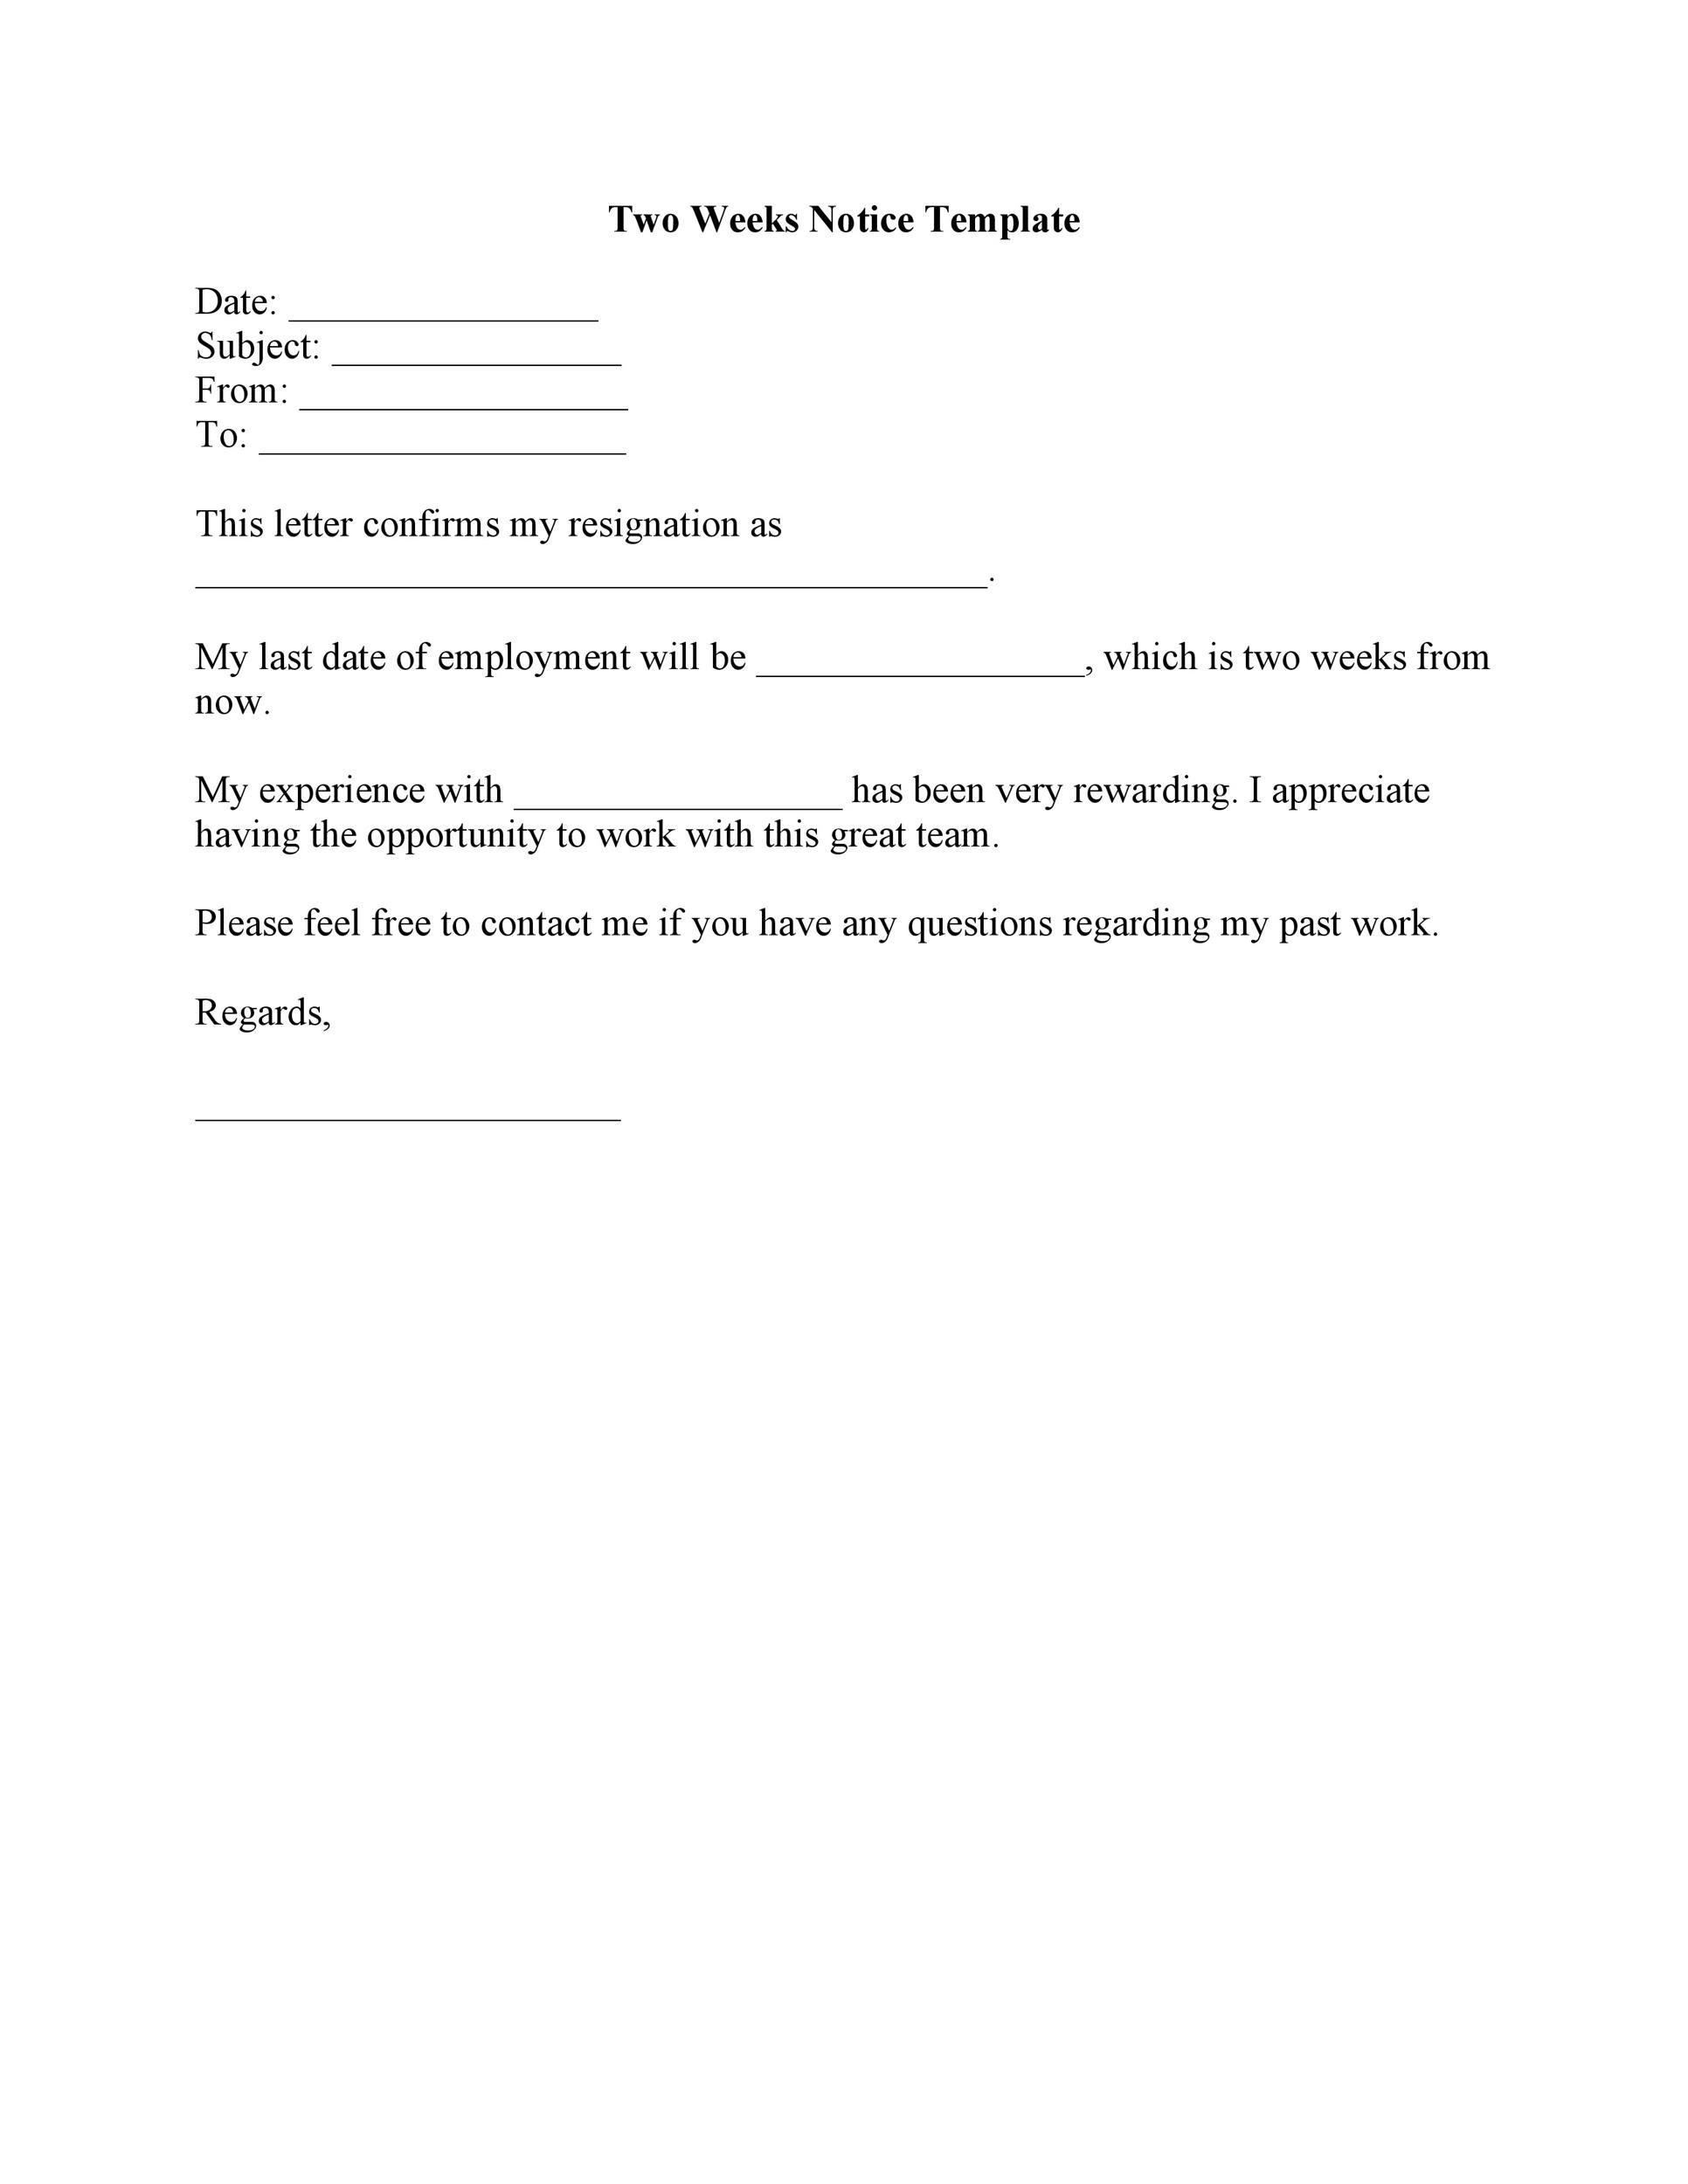 how to give two weeks notice letter thevictorianparlorco – Copyright Notice Template